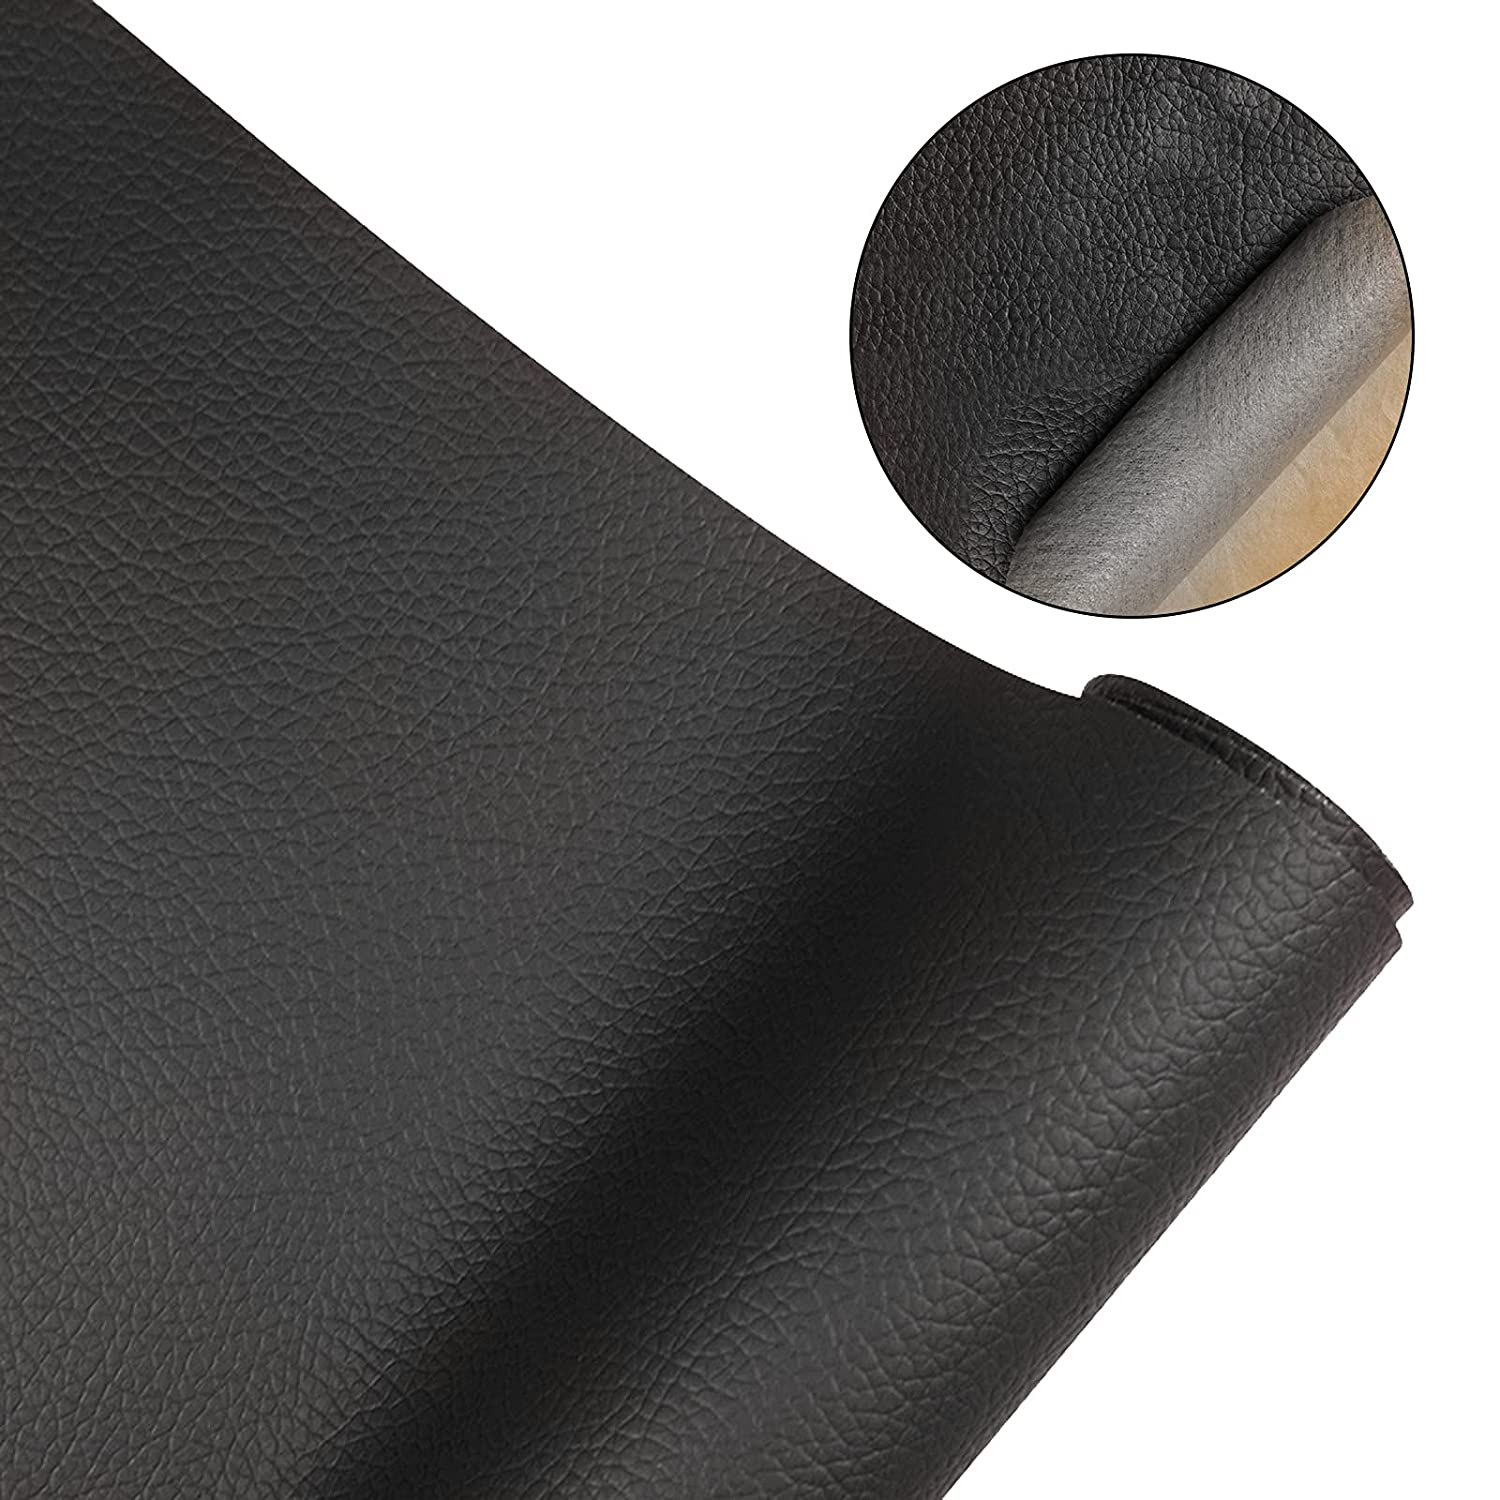 Leather Repair Patch Kit, 20x55inch Self-Adhesive Leather Repair Tape Anti Scratch Couch Repair Kit for Couches, Car Seat, Furniture, Wall (Black)